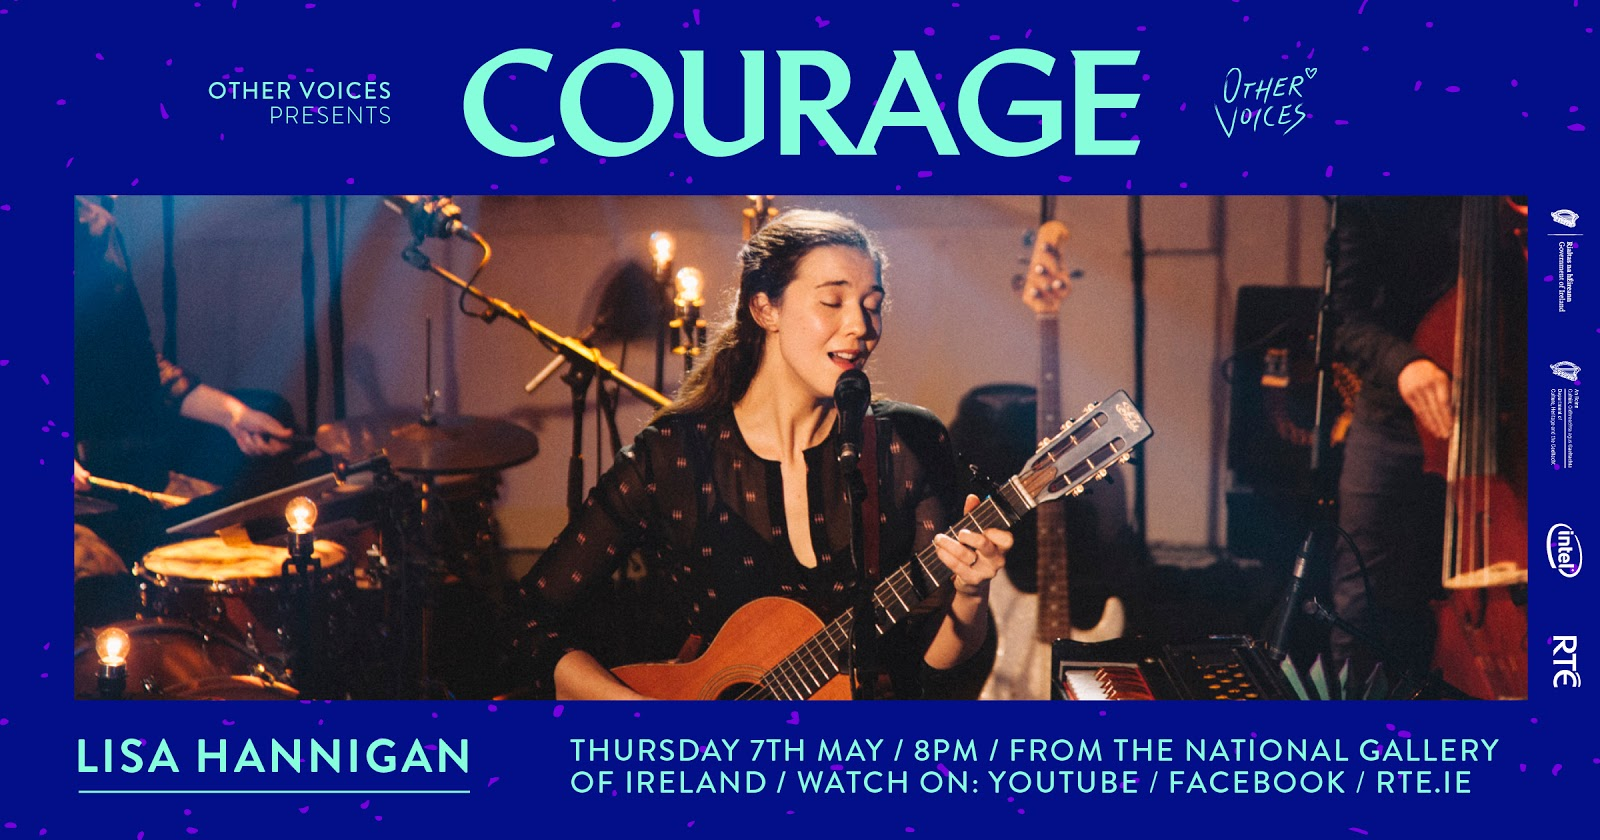 Other Voices 'Courage' Returns with Lisa Hannigan